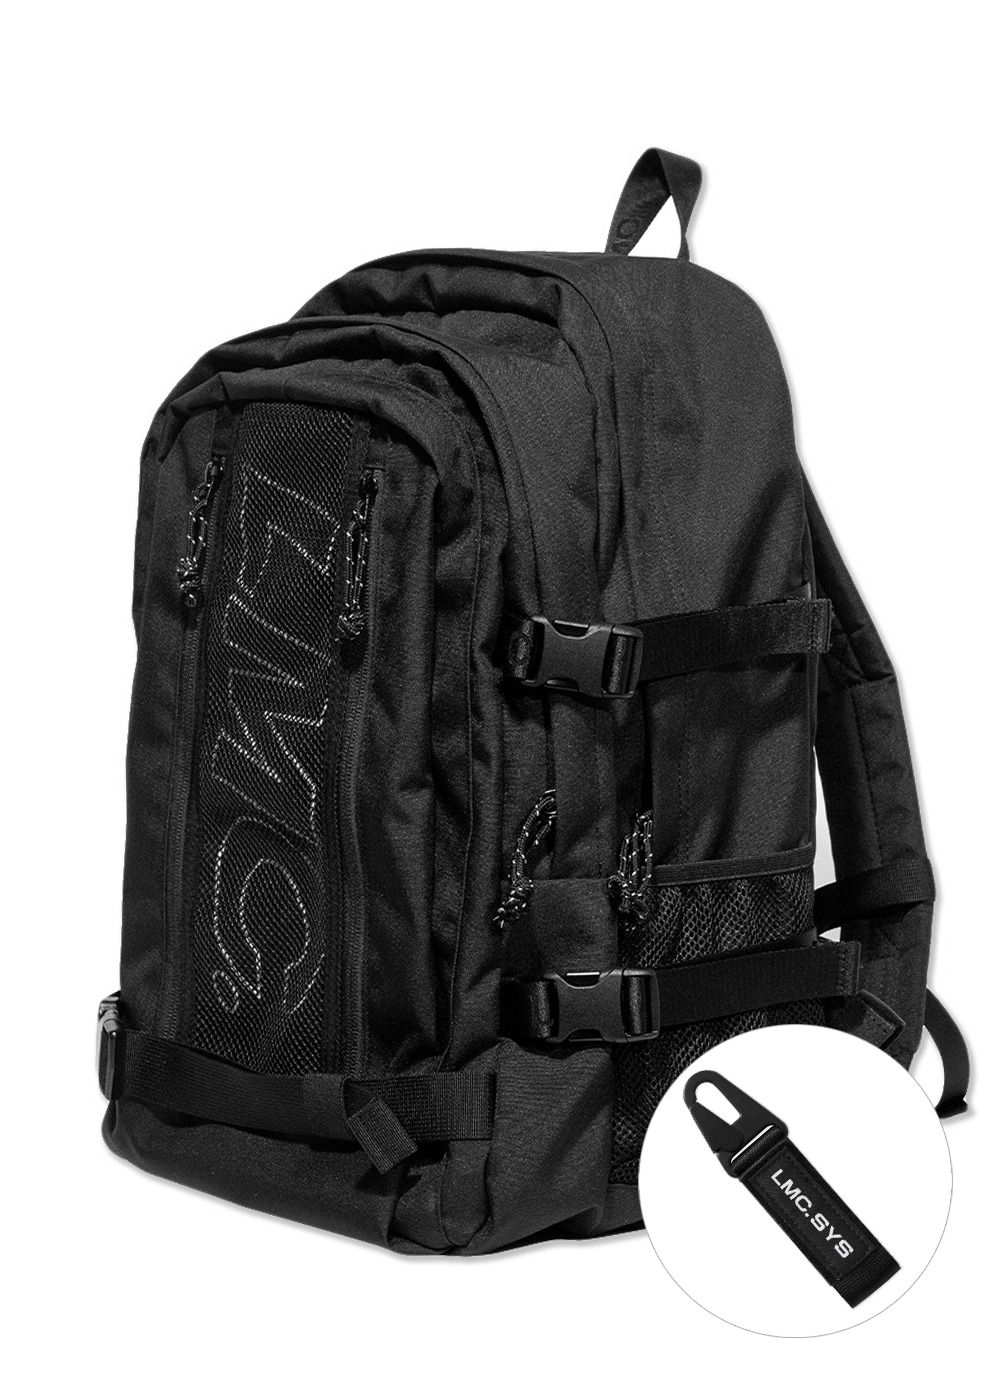 LMC SYSTEM UTILITY BACKPACK Ⅰ black